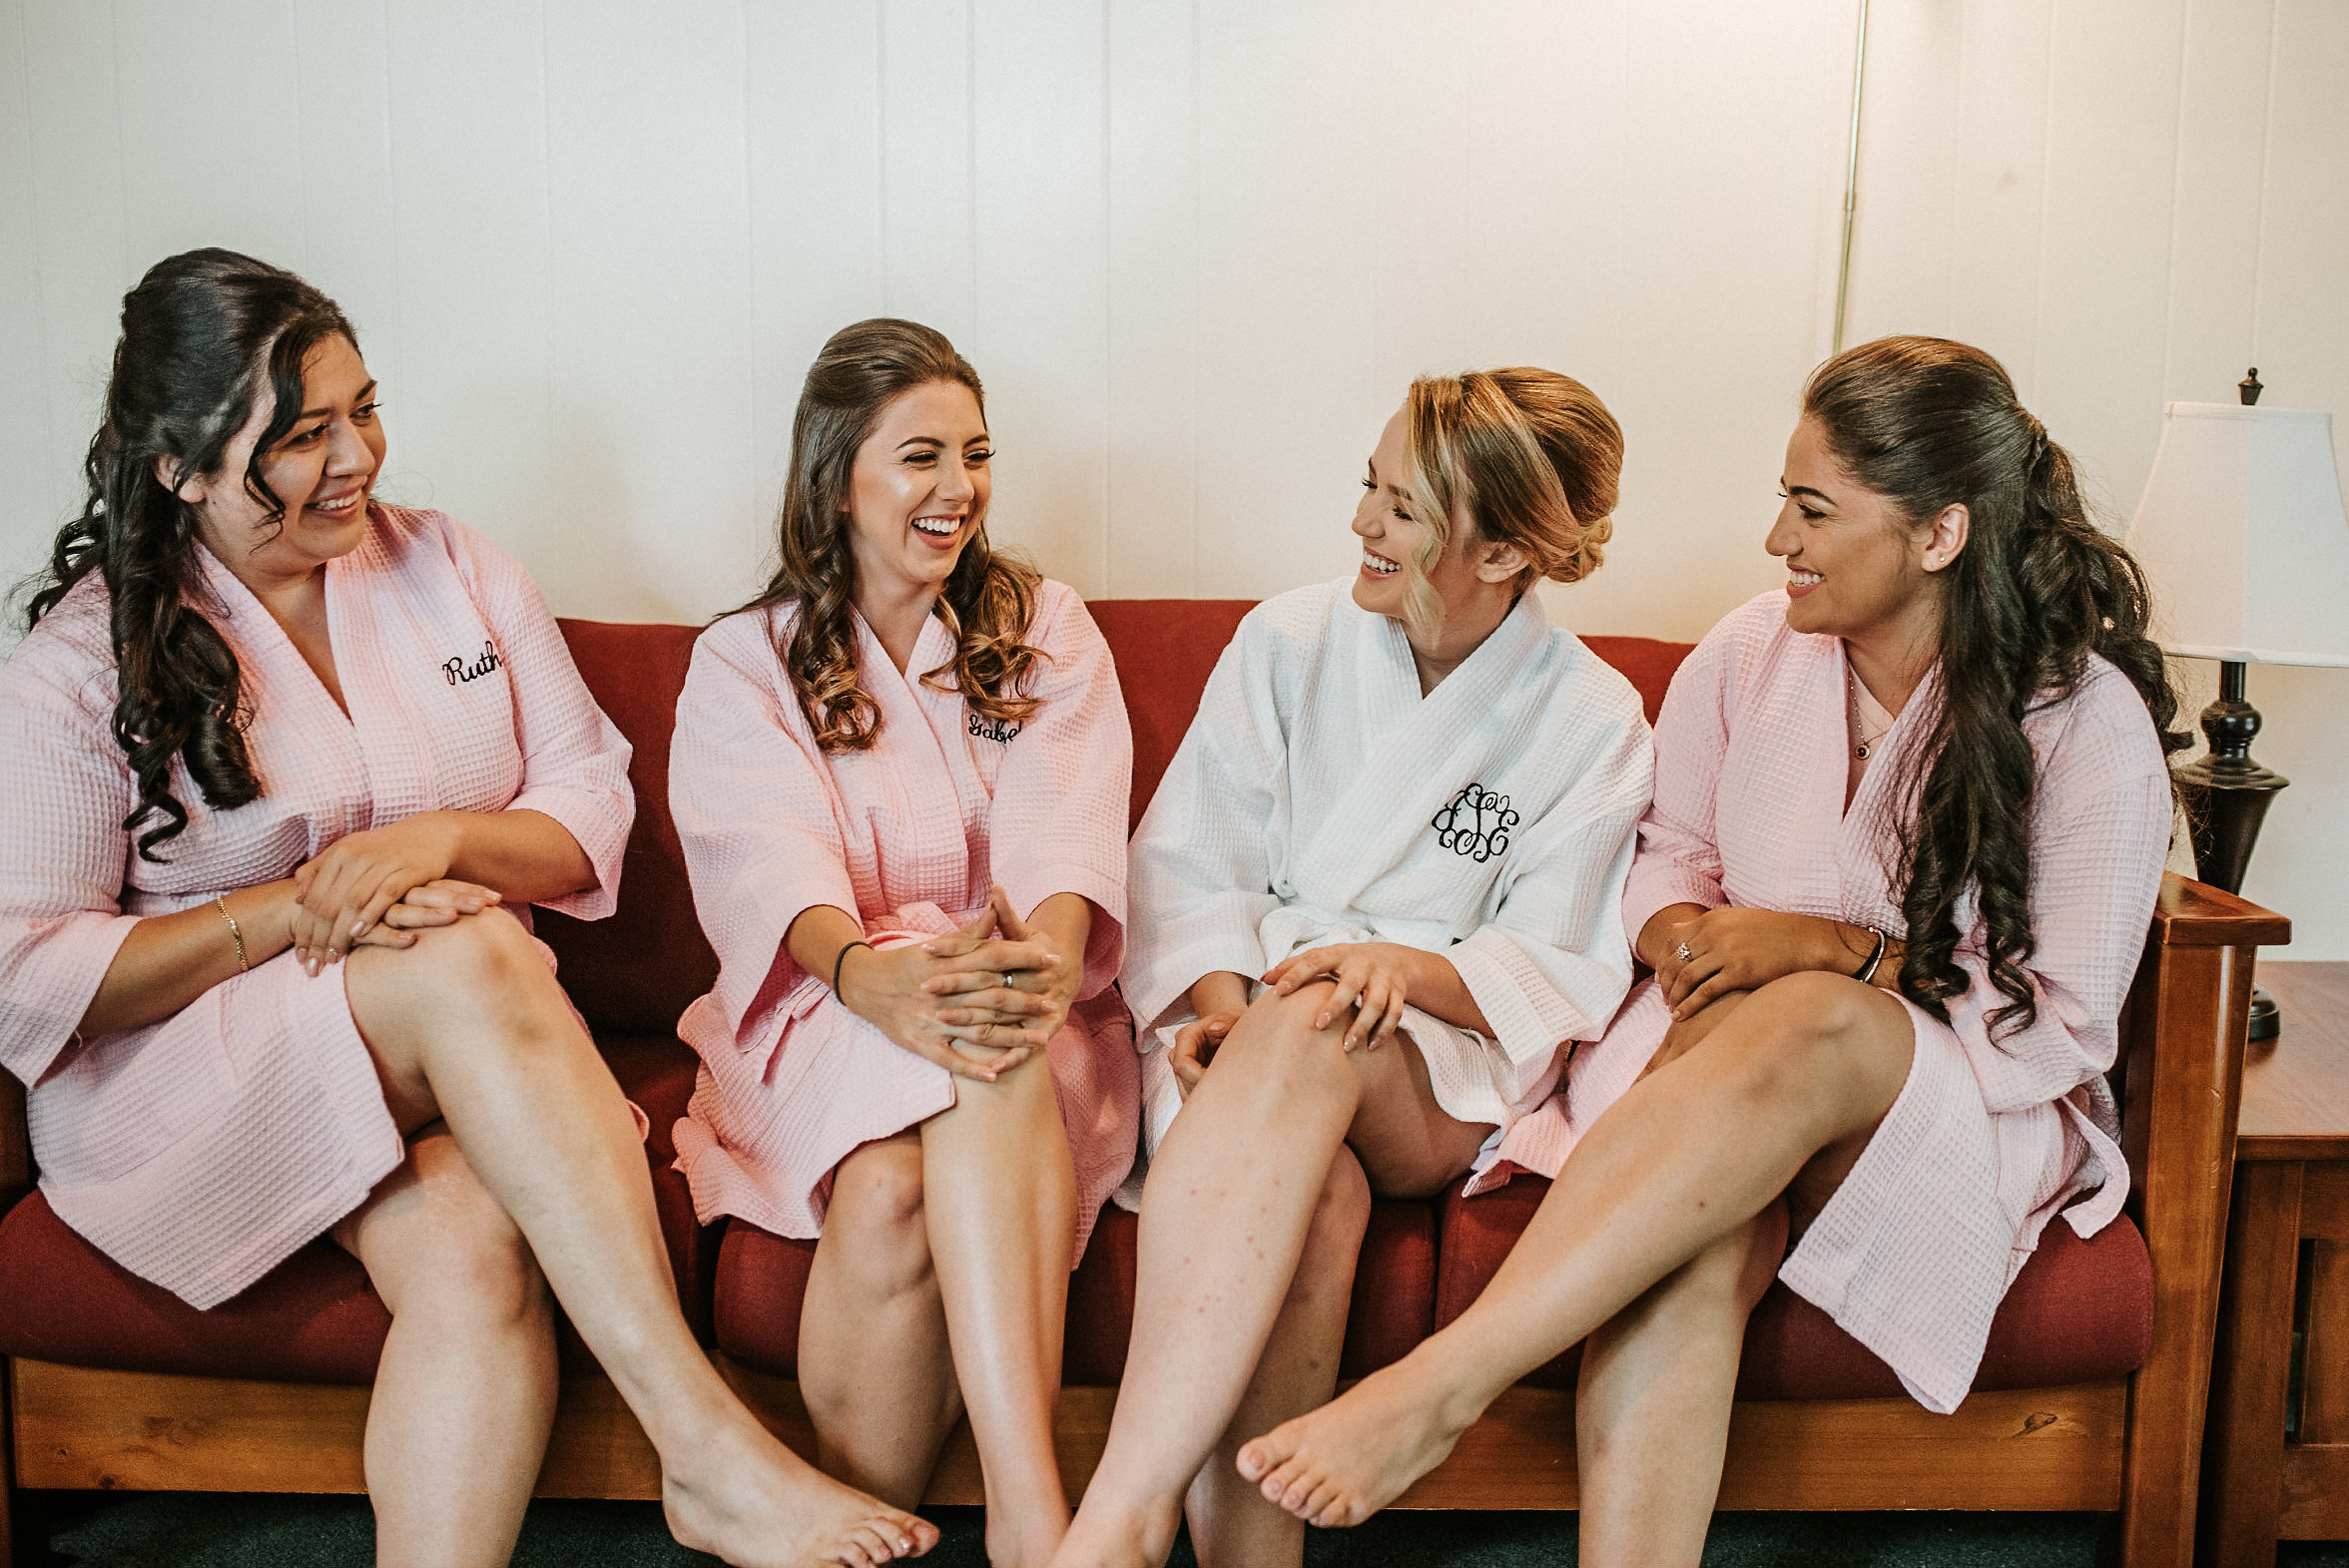 Bridal party matching white and pink robes